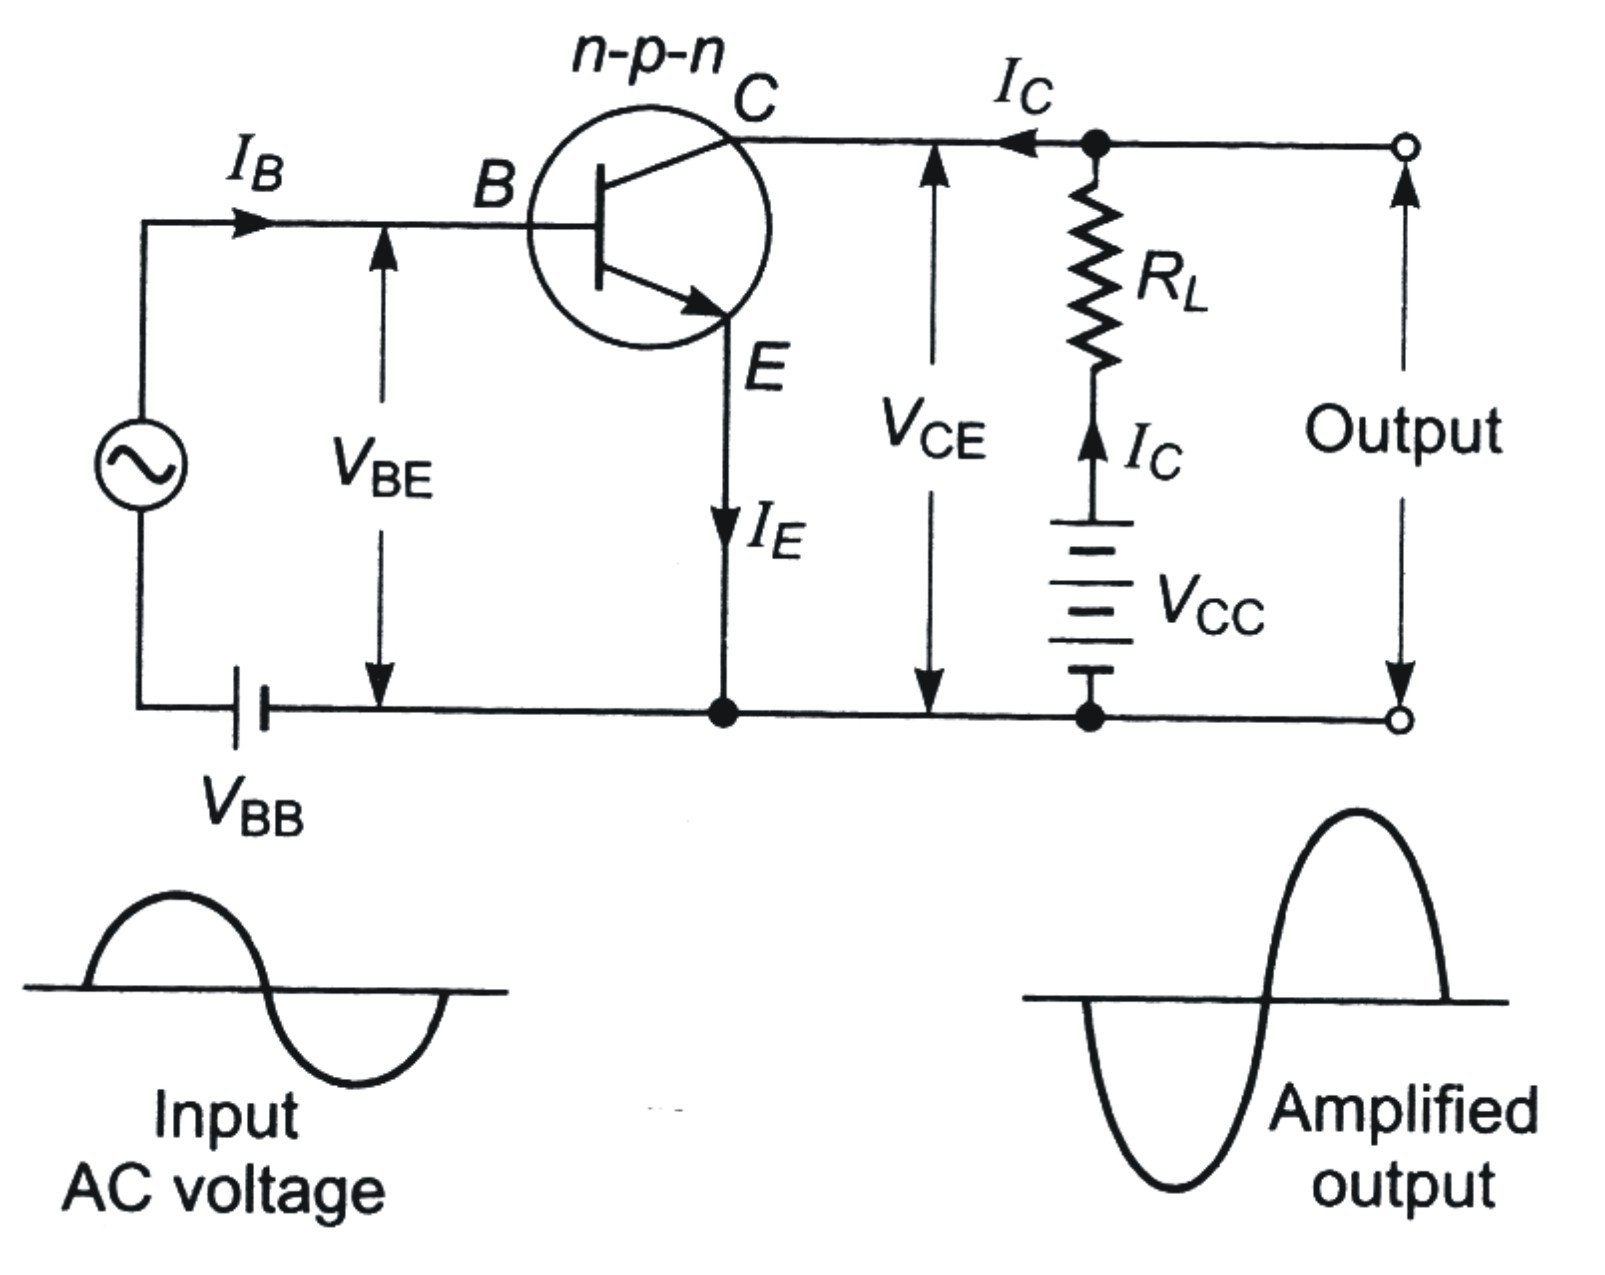 circuit diagram for the common emitter amplifier configuration is